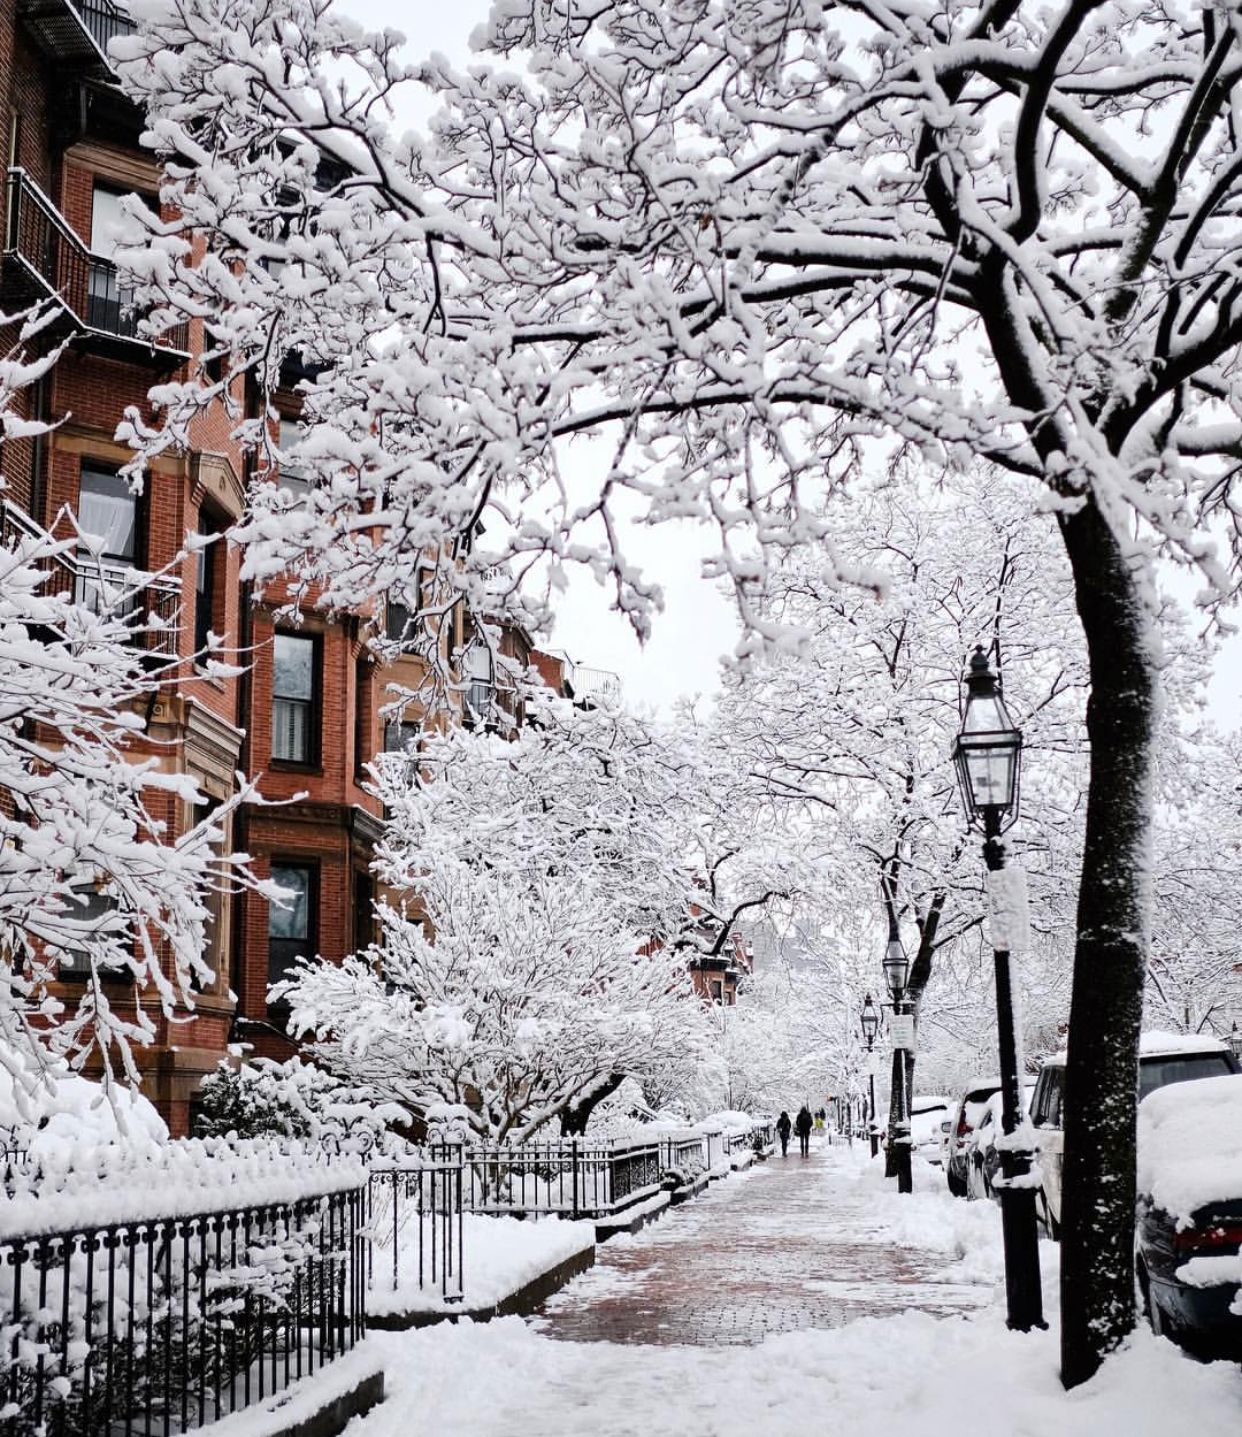 Life Without Louboutins Champagne Taste On A Budget Winter Scenery Winter Pictures Winter Wallpaper